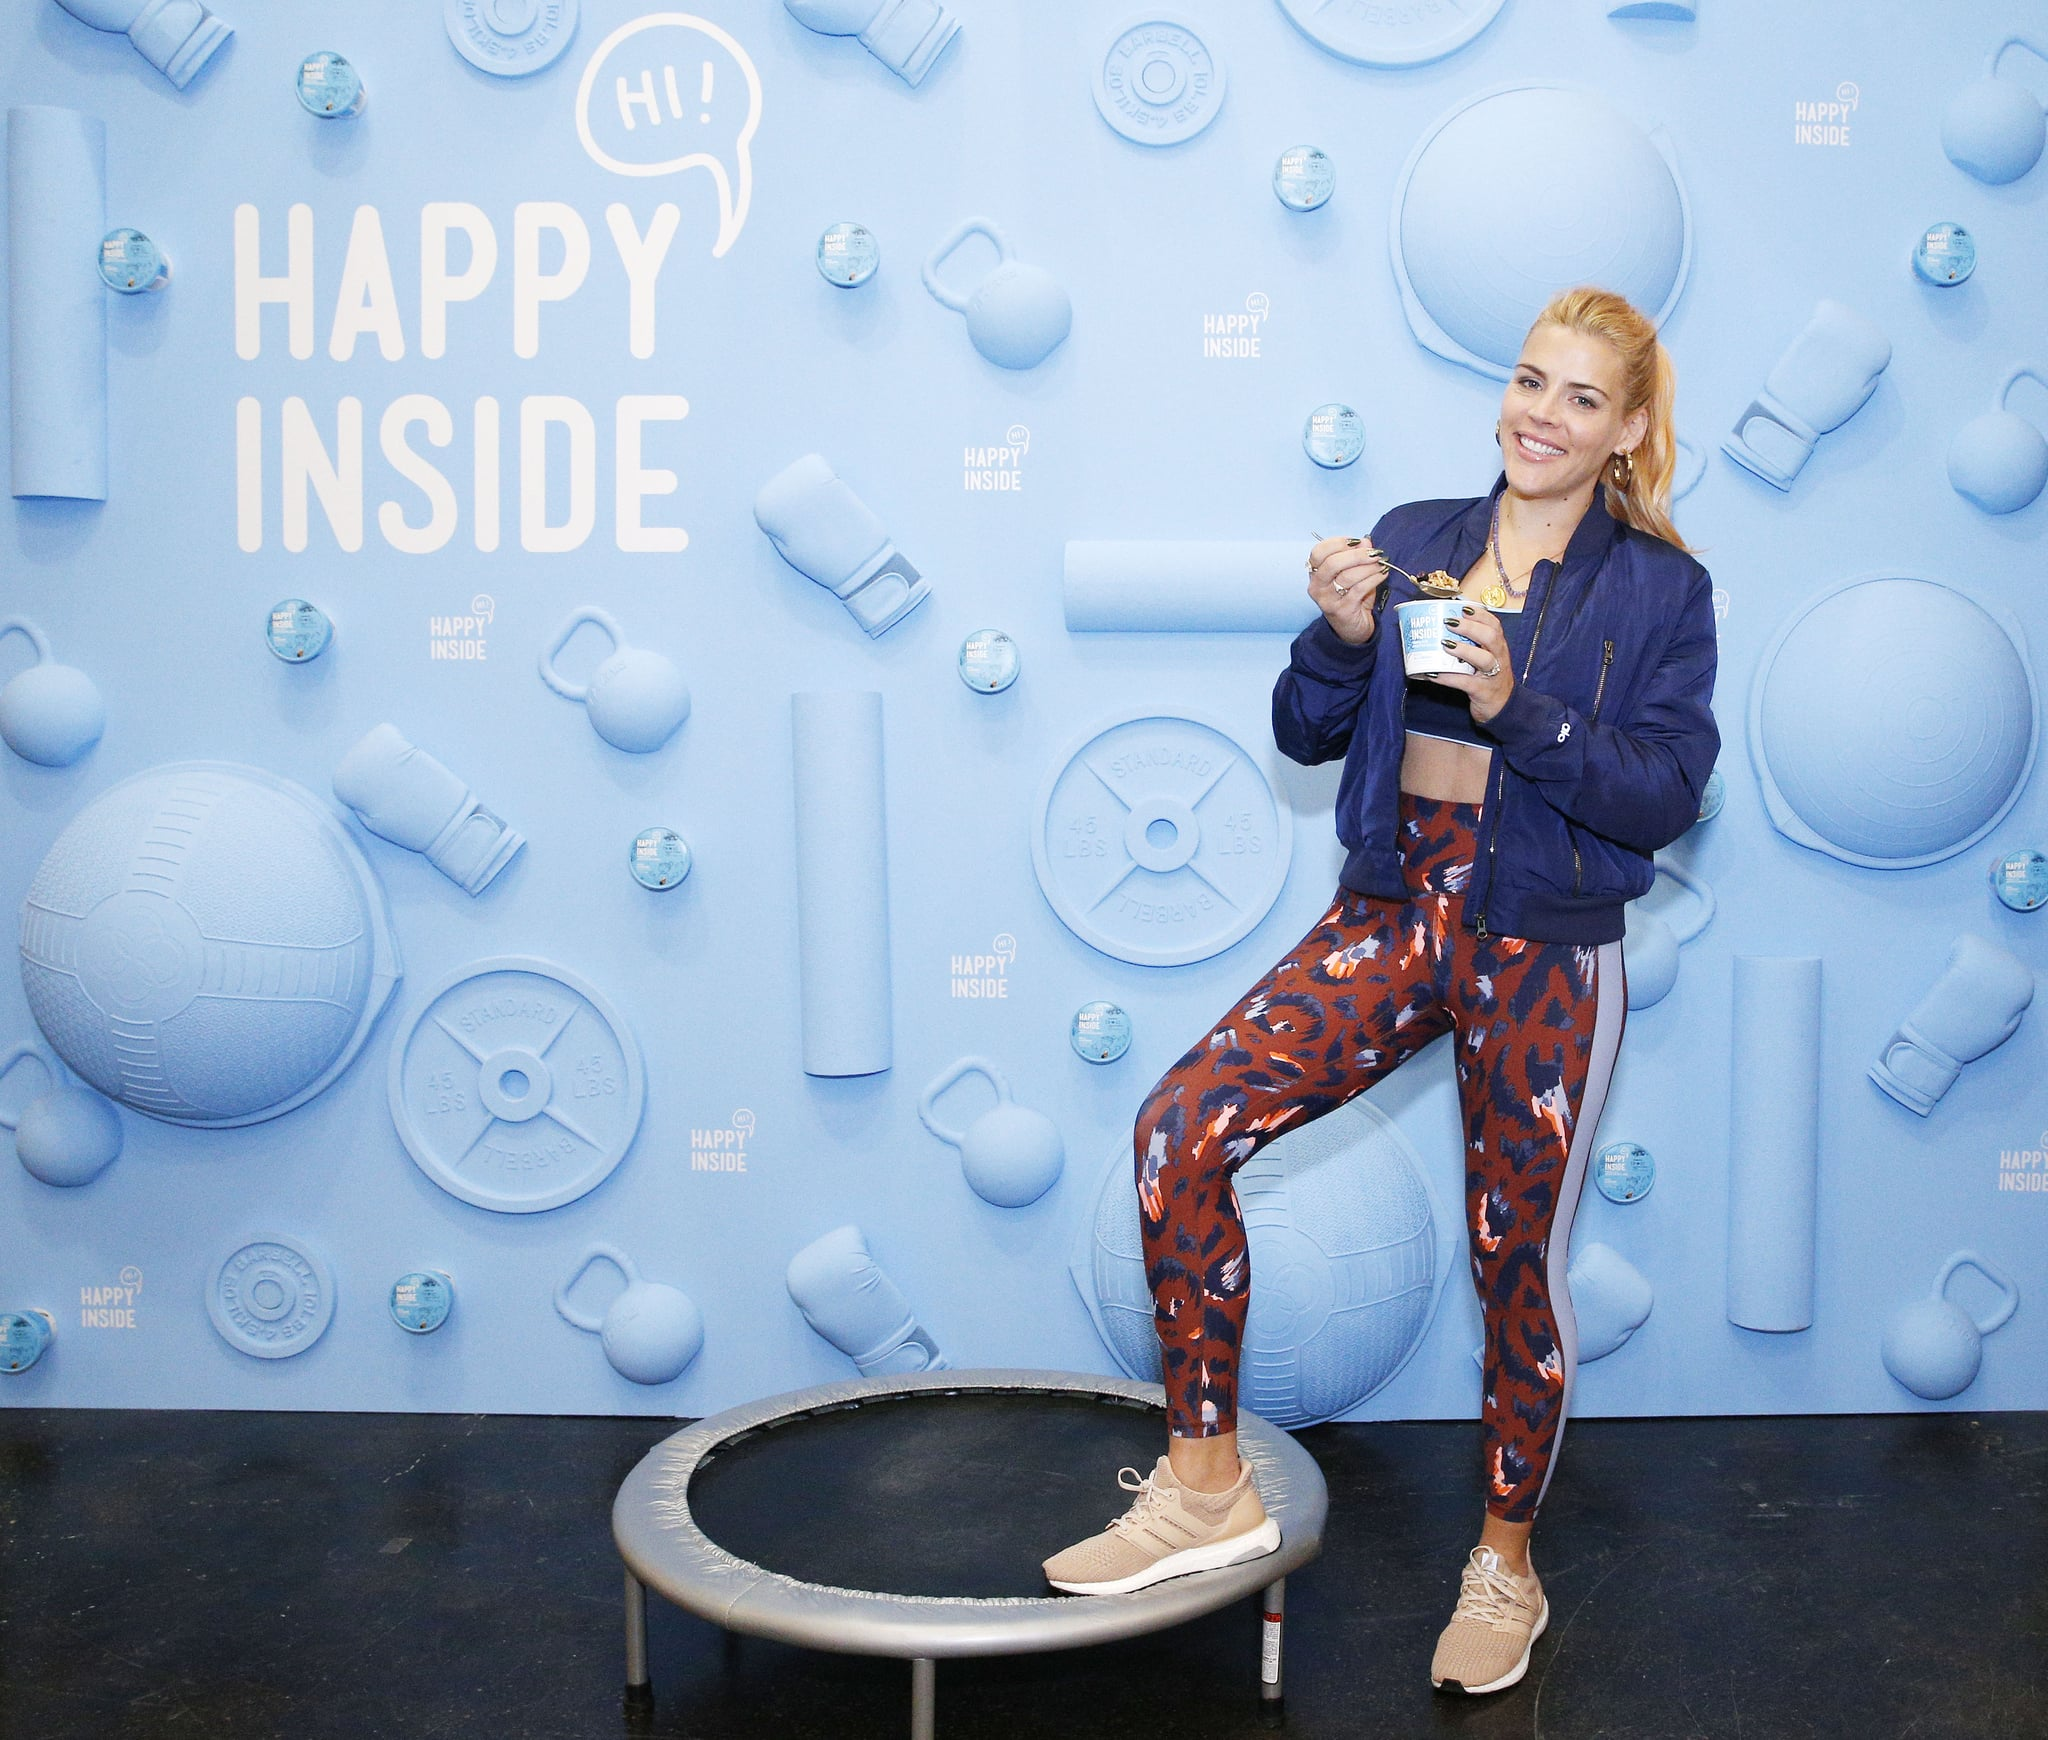 NEW YORK, NEW YORK - JANUARY 25: Actress Busy Philipps with new HI! Happy Inside cereal at Kellogg's Cafe January 25, 2019 in New York City. (Photo by Kena Betancur/Getty Images for HI! Happy Inside)